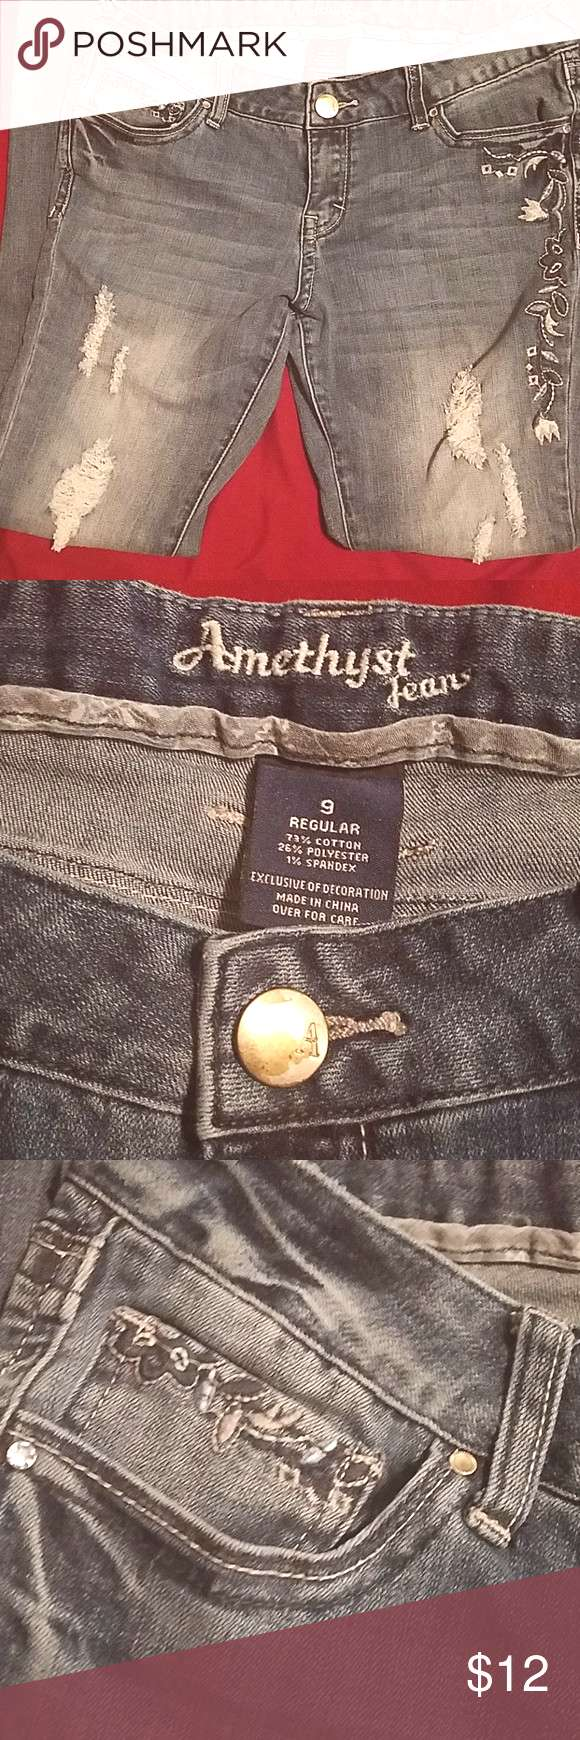 Amethyst jeans size 9 Size 9 dark wash straight leg amethyst jeans, distressed and have blue and wh